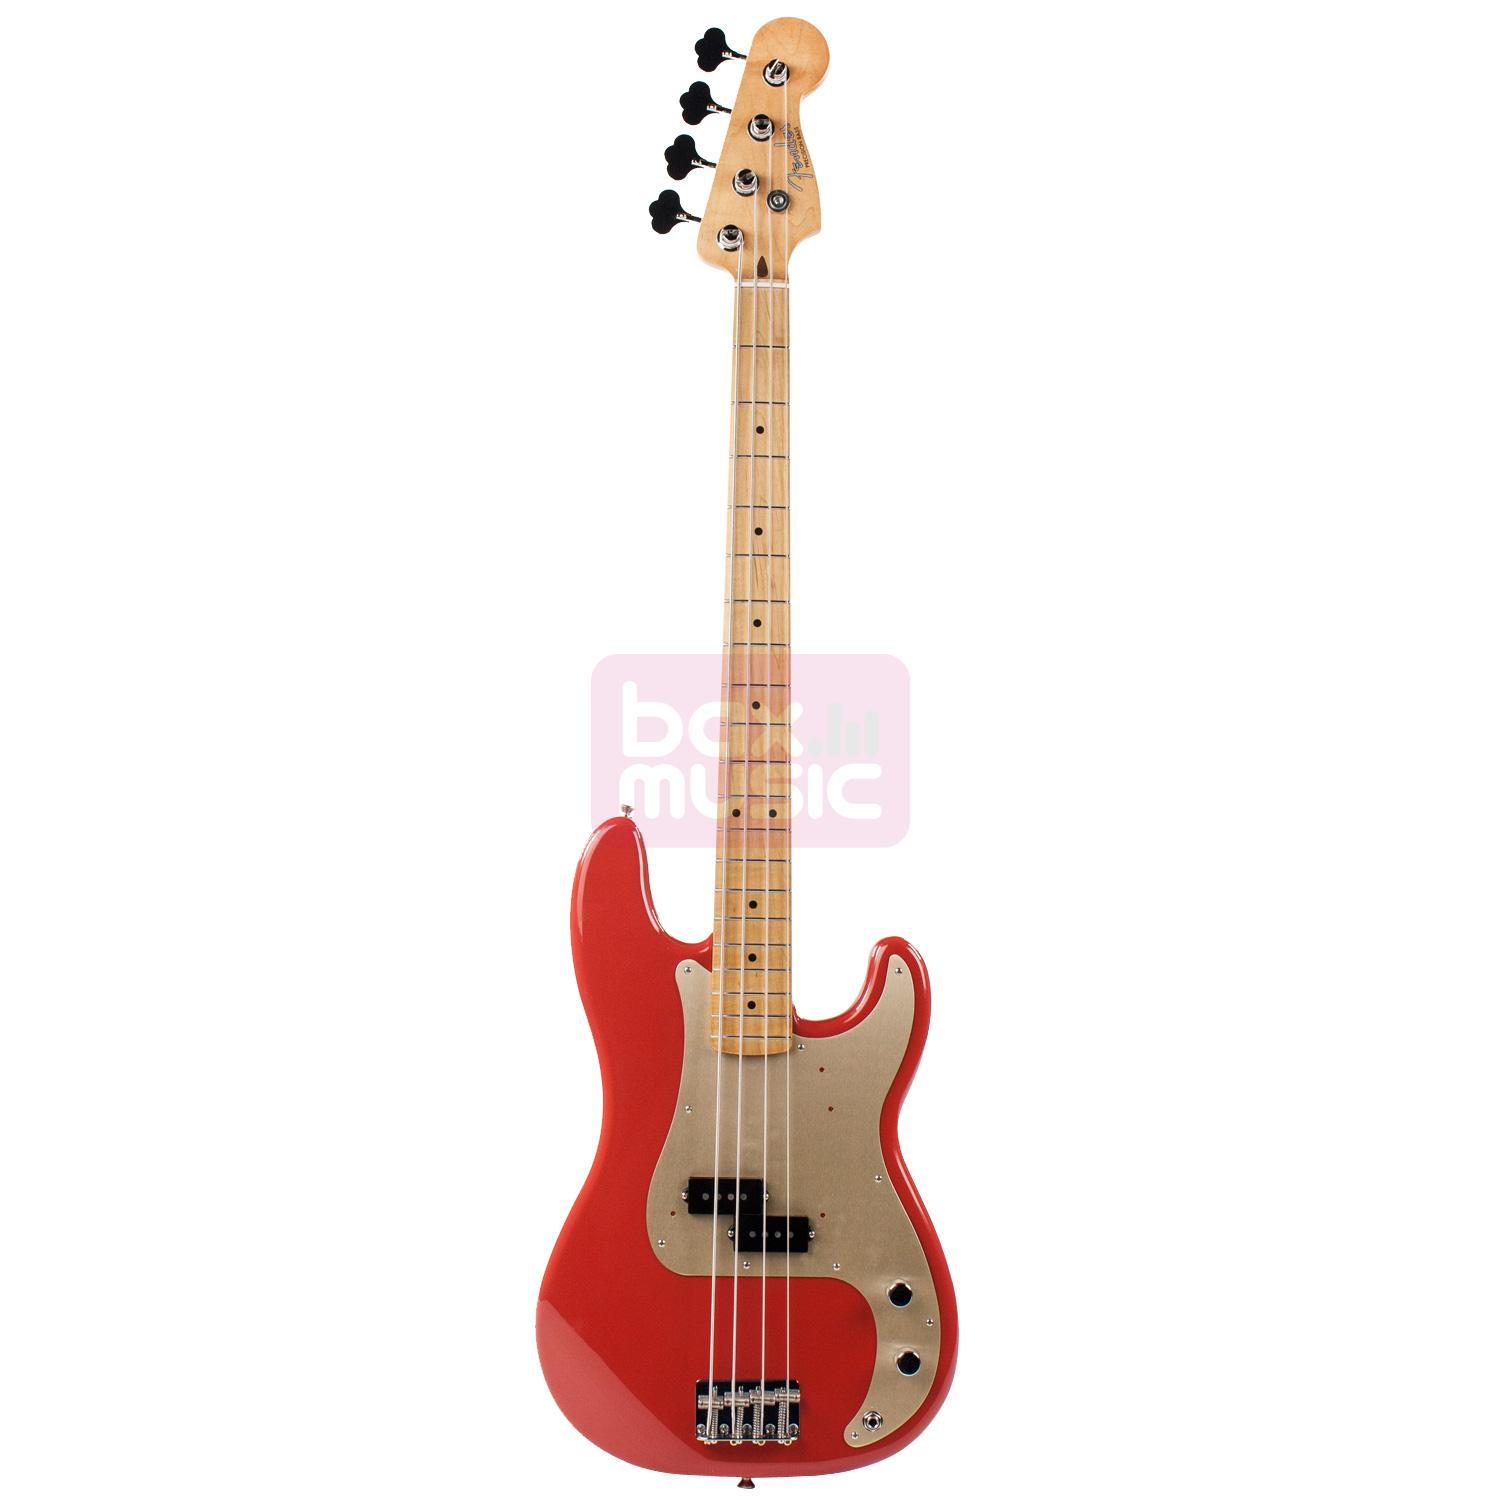 Fender Classic Series 50s Precision Bass Fiesta Red MN